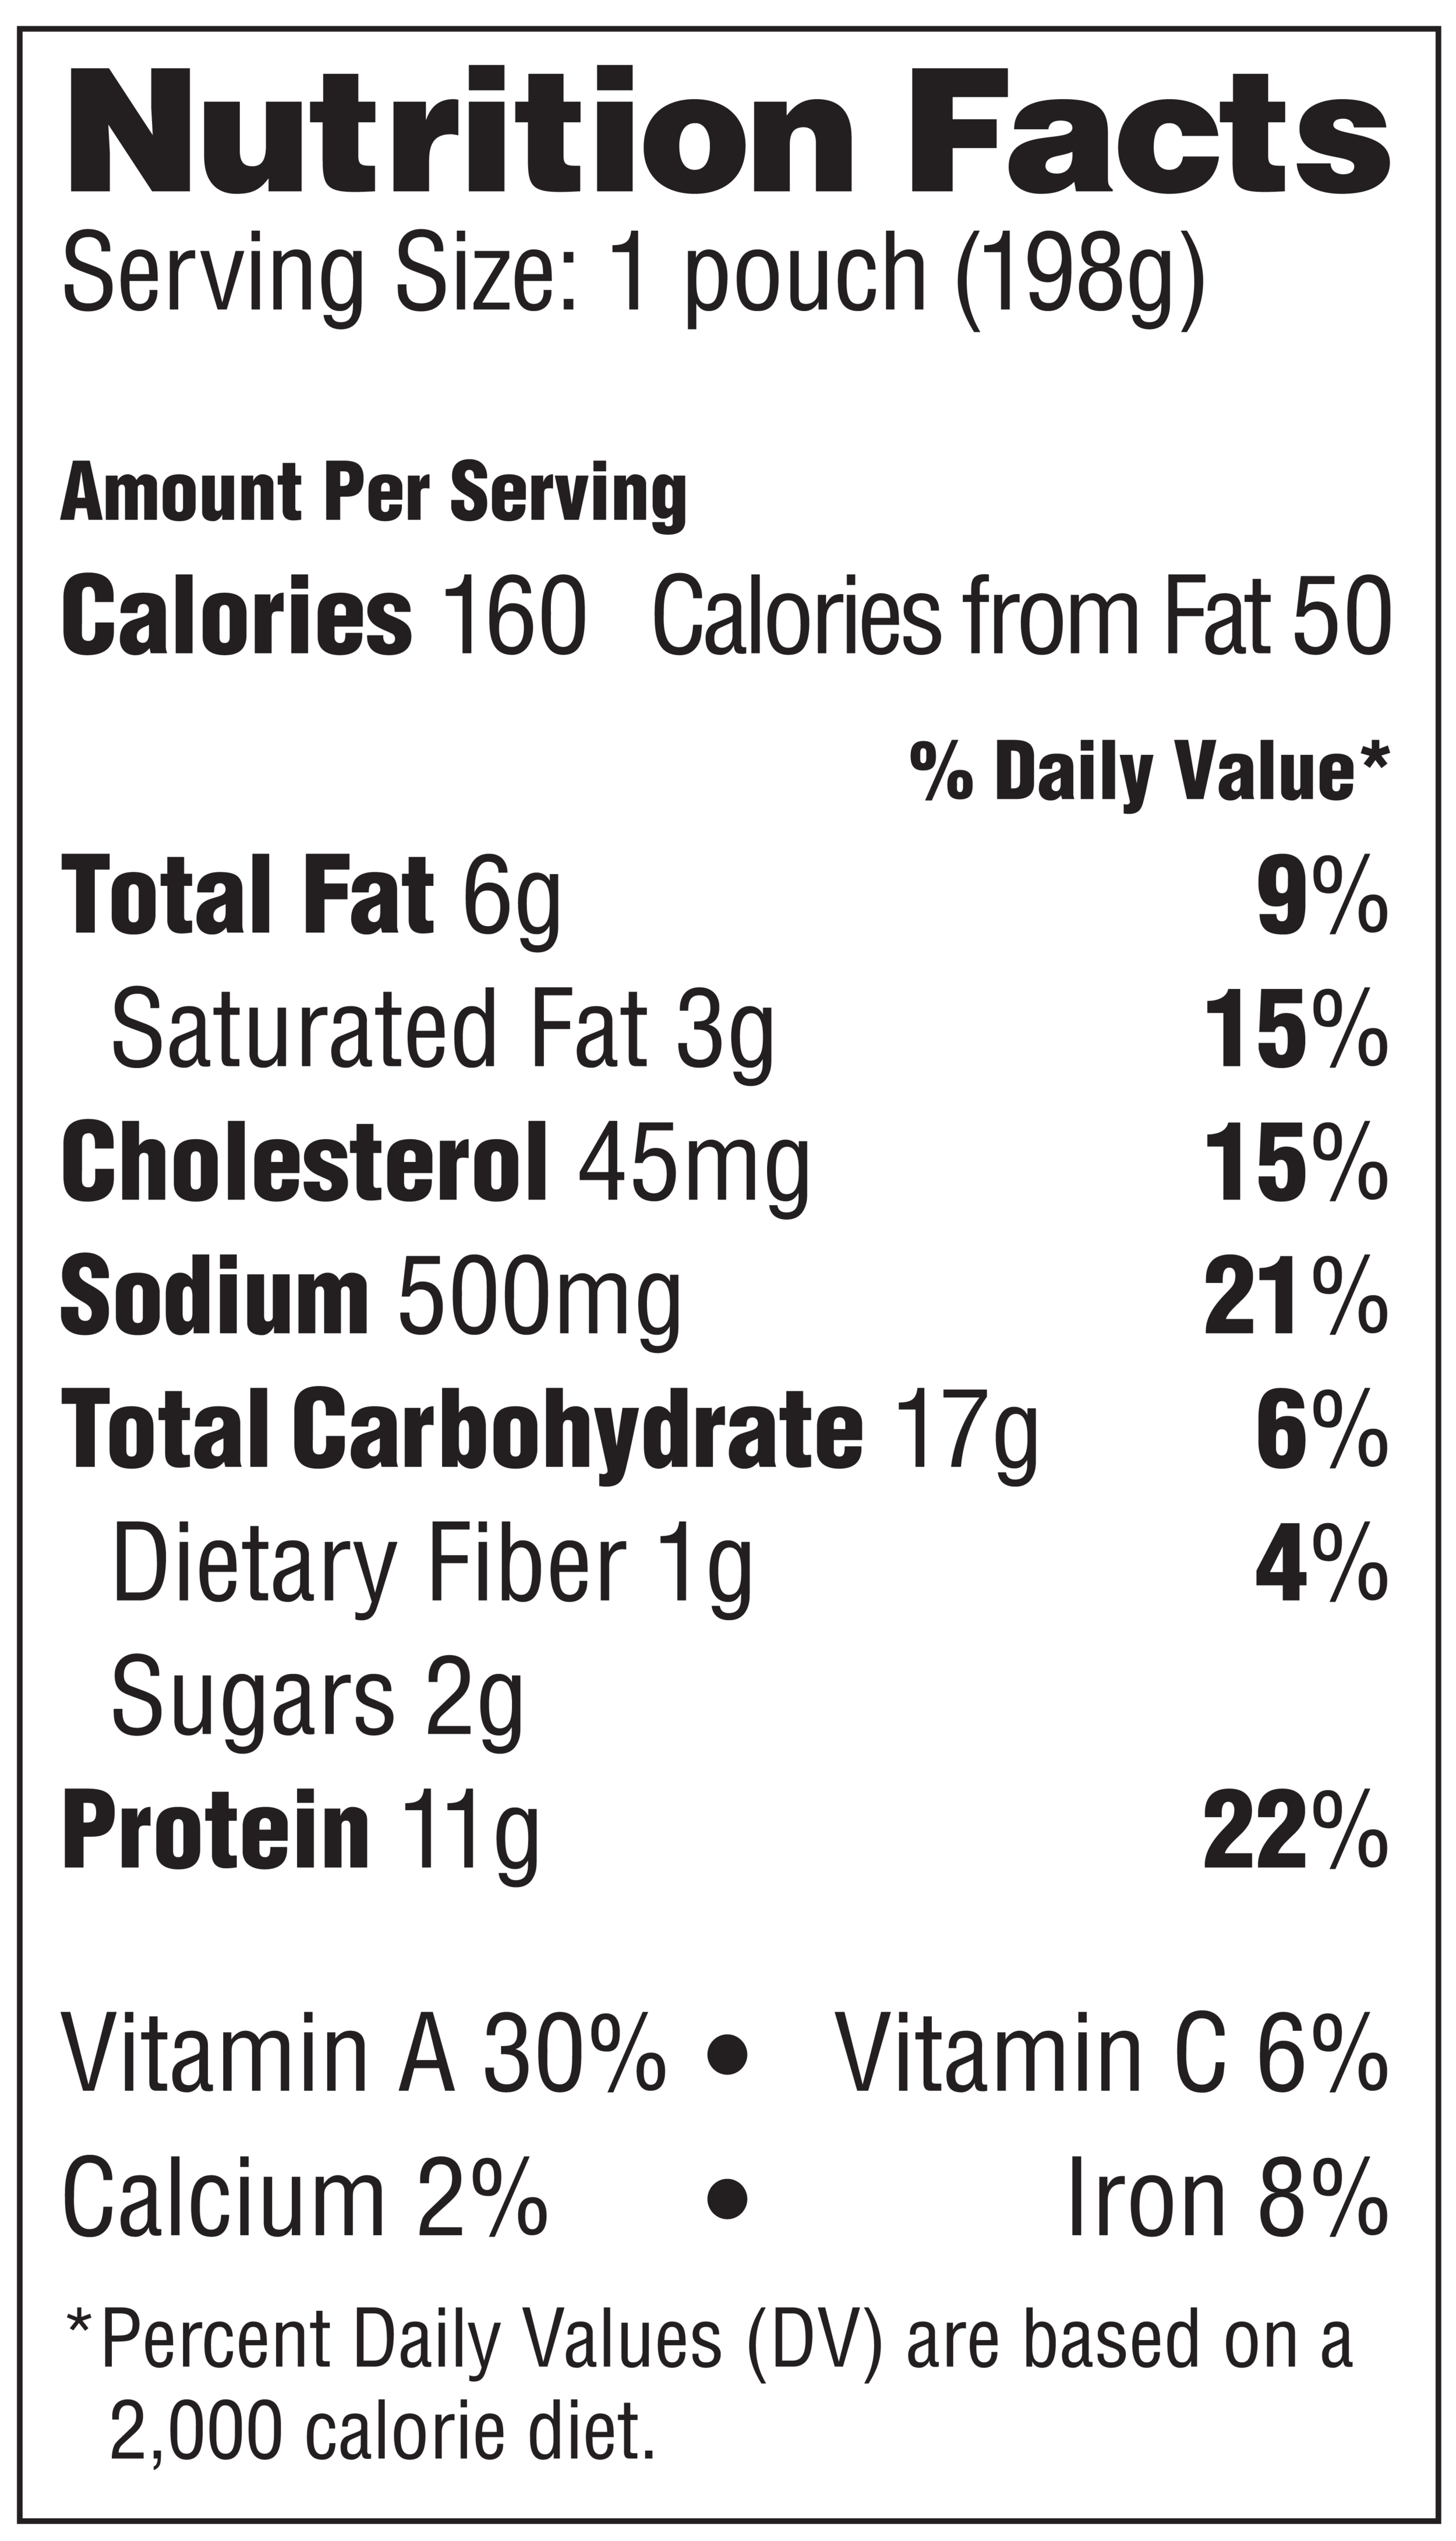 Nutrition Facts_ChickenNoodle_Freeli  -01.png